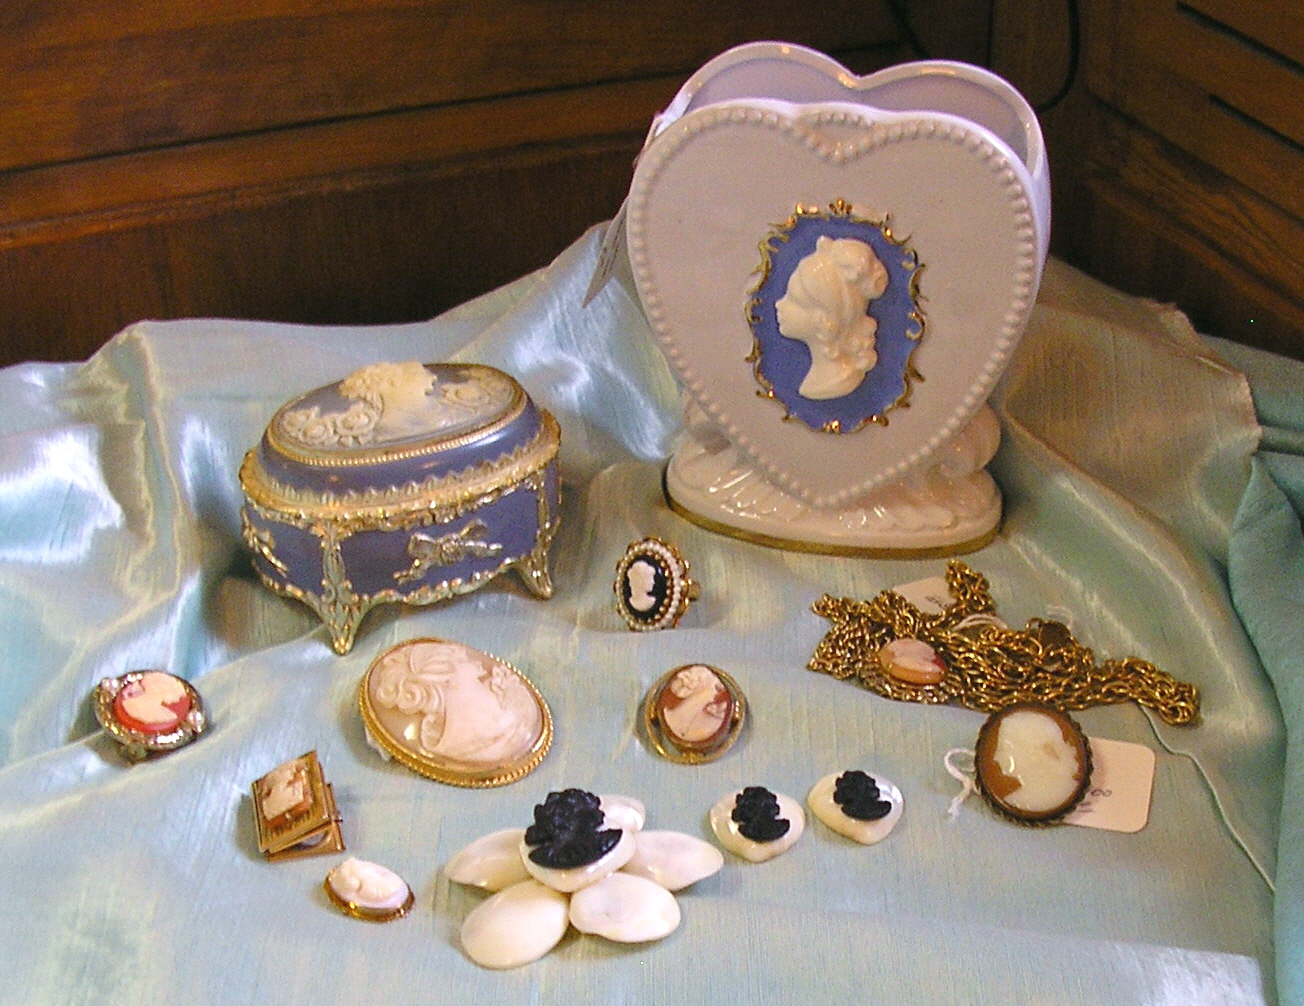 Cameo pendants, brooches, and collectible cameo items